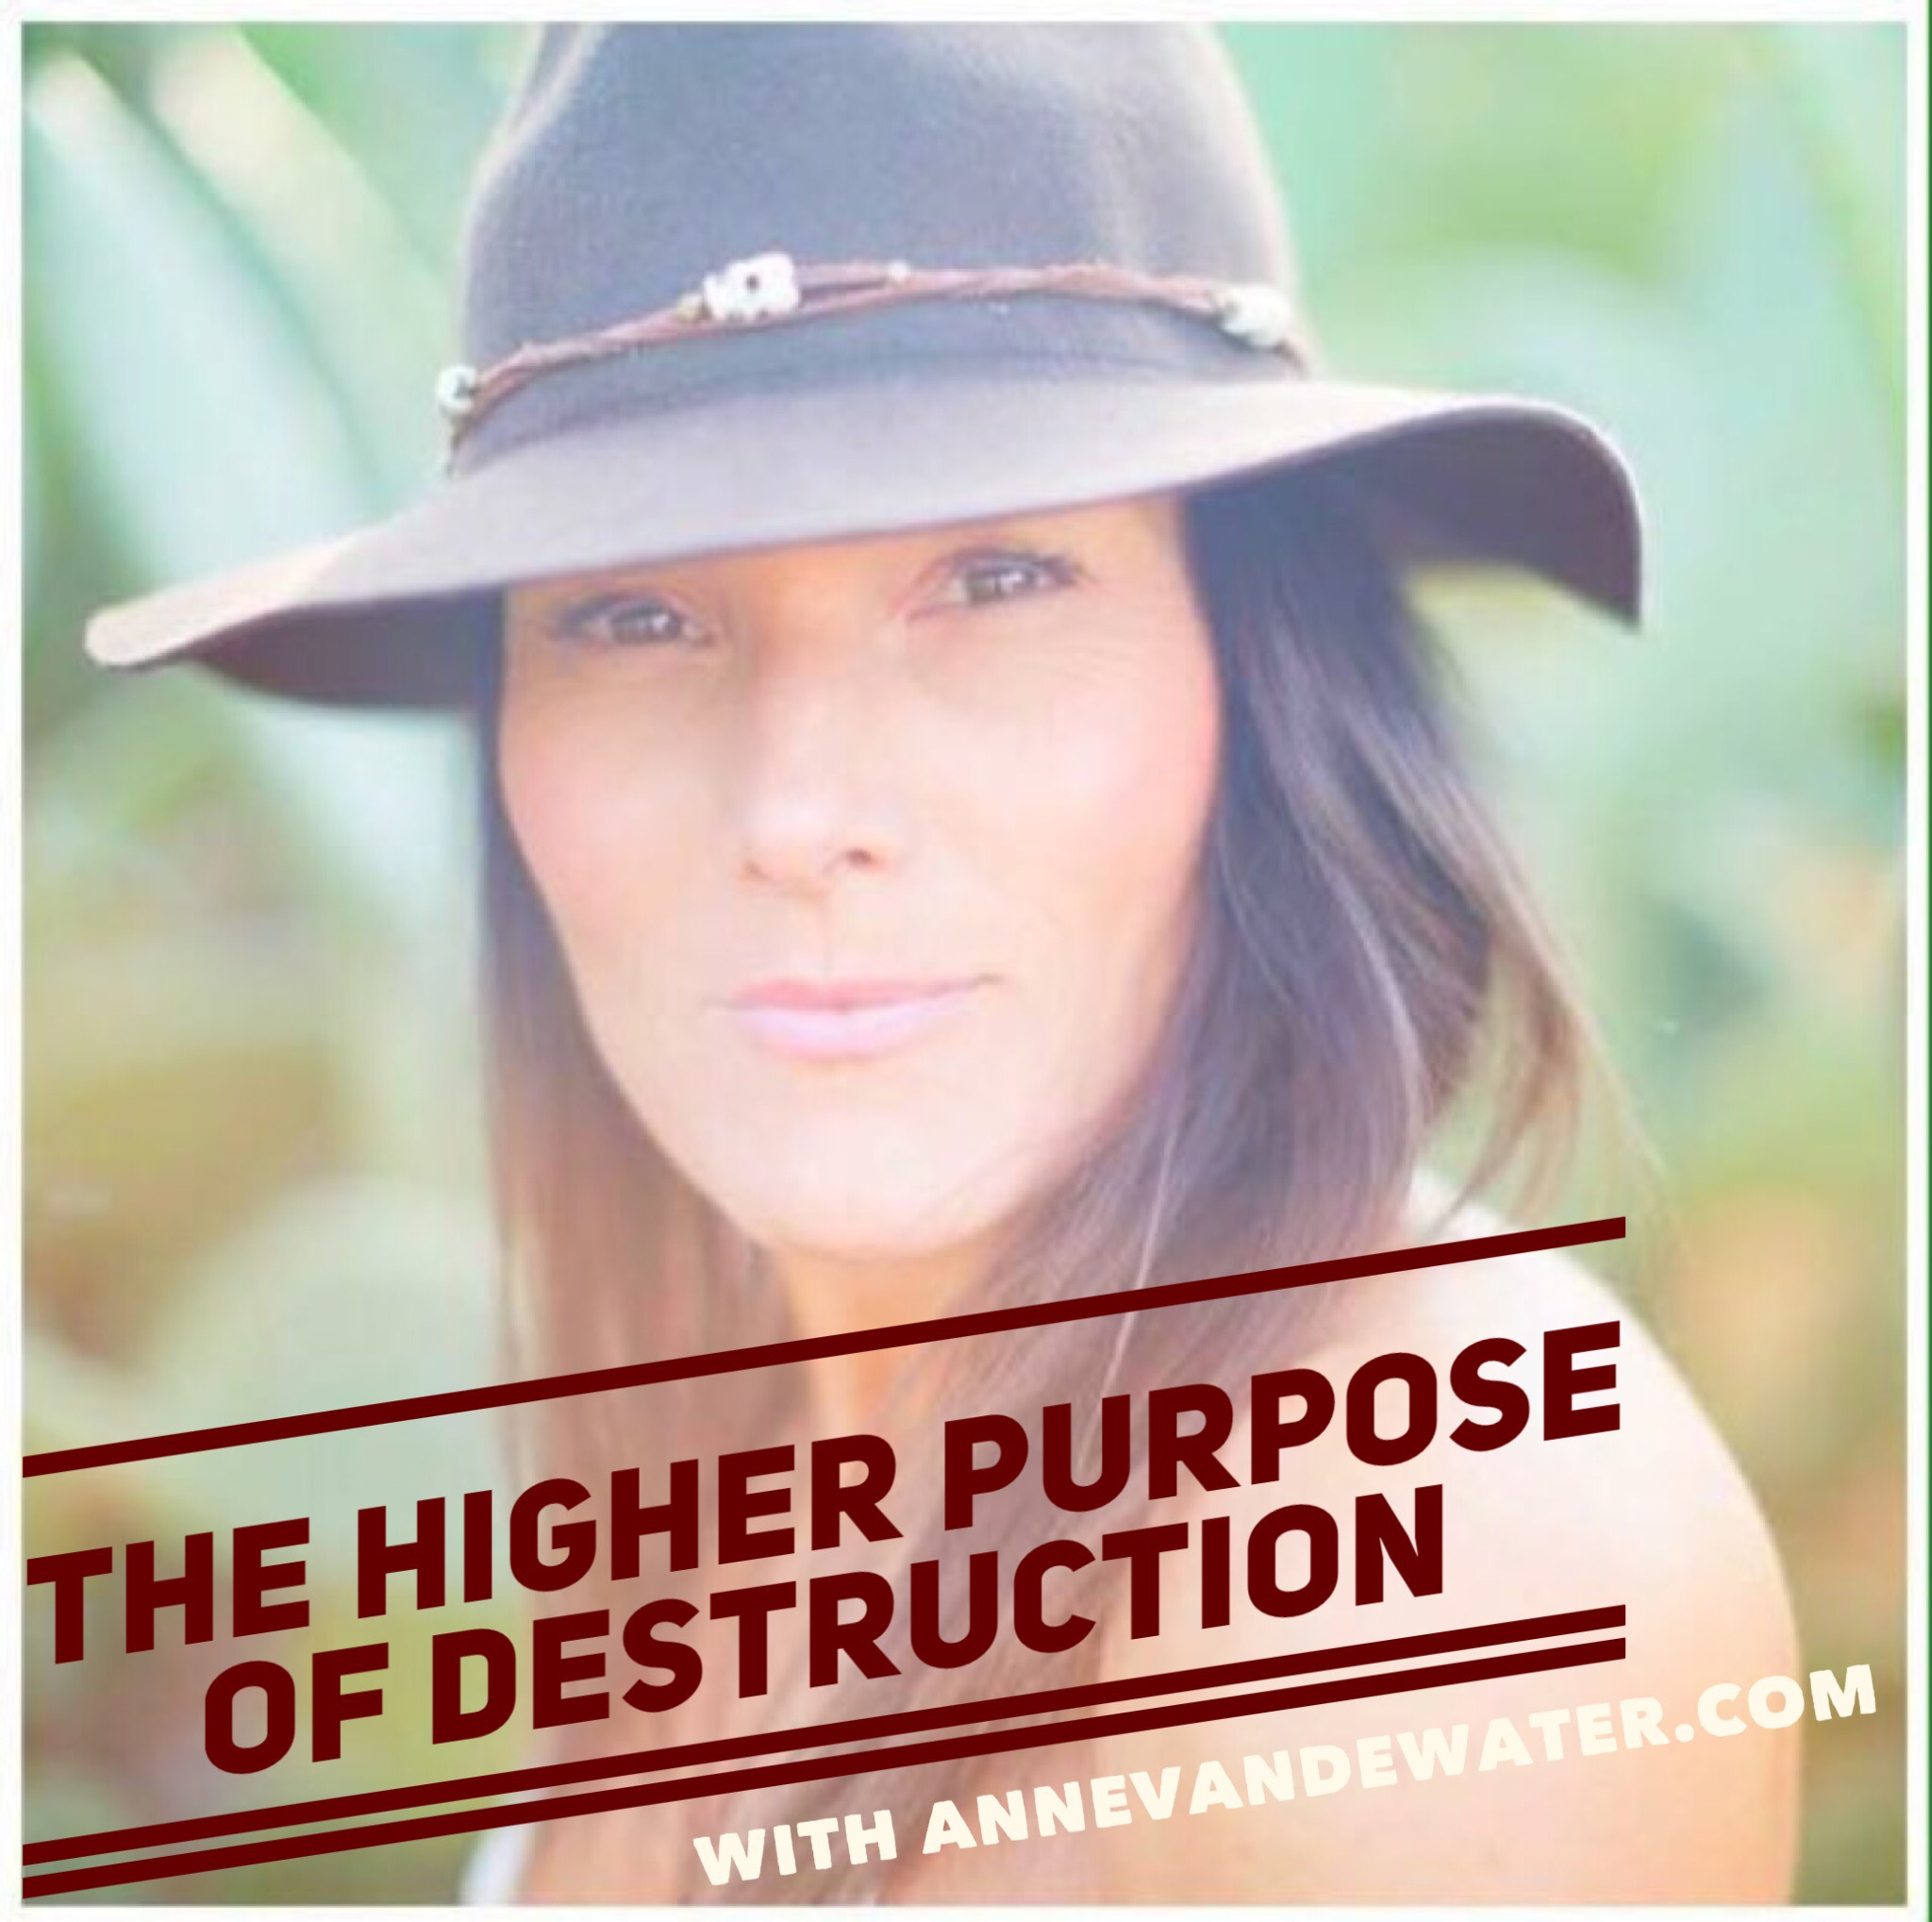 THE HIGHER PURPOSE OF DESTRUCTION